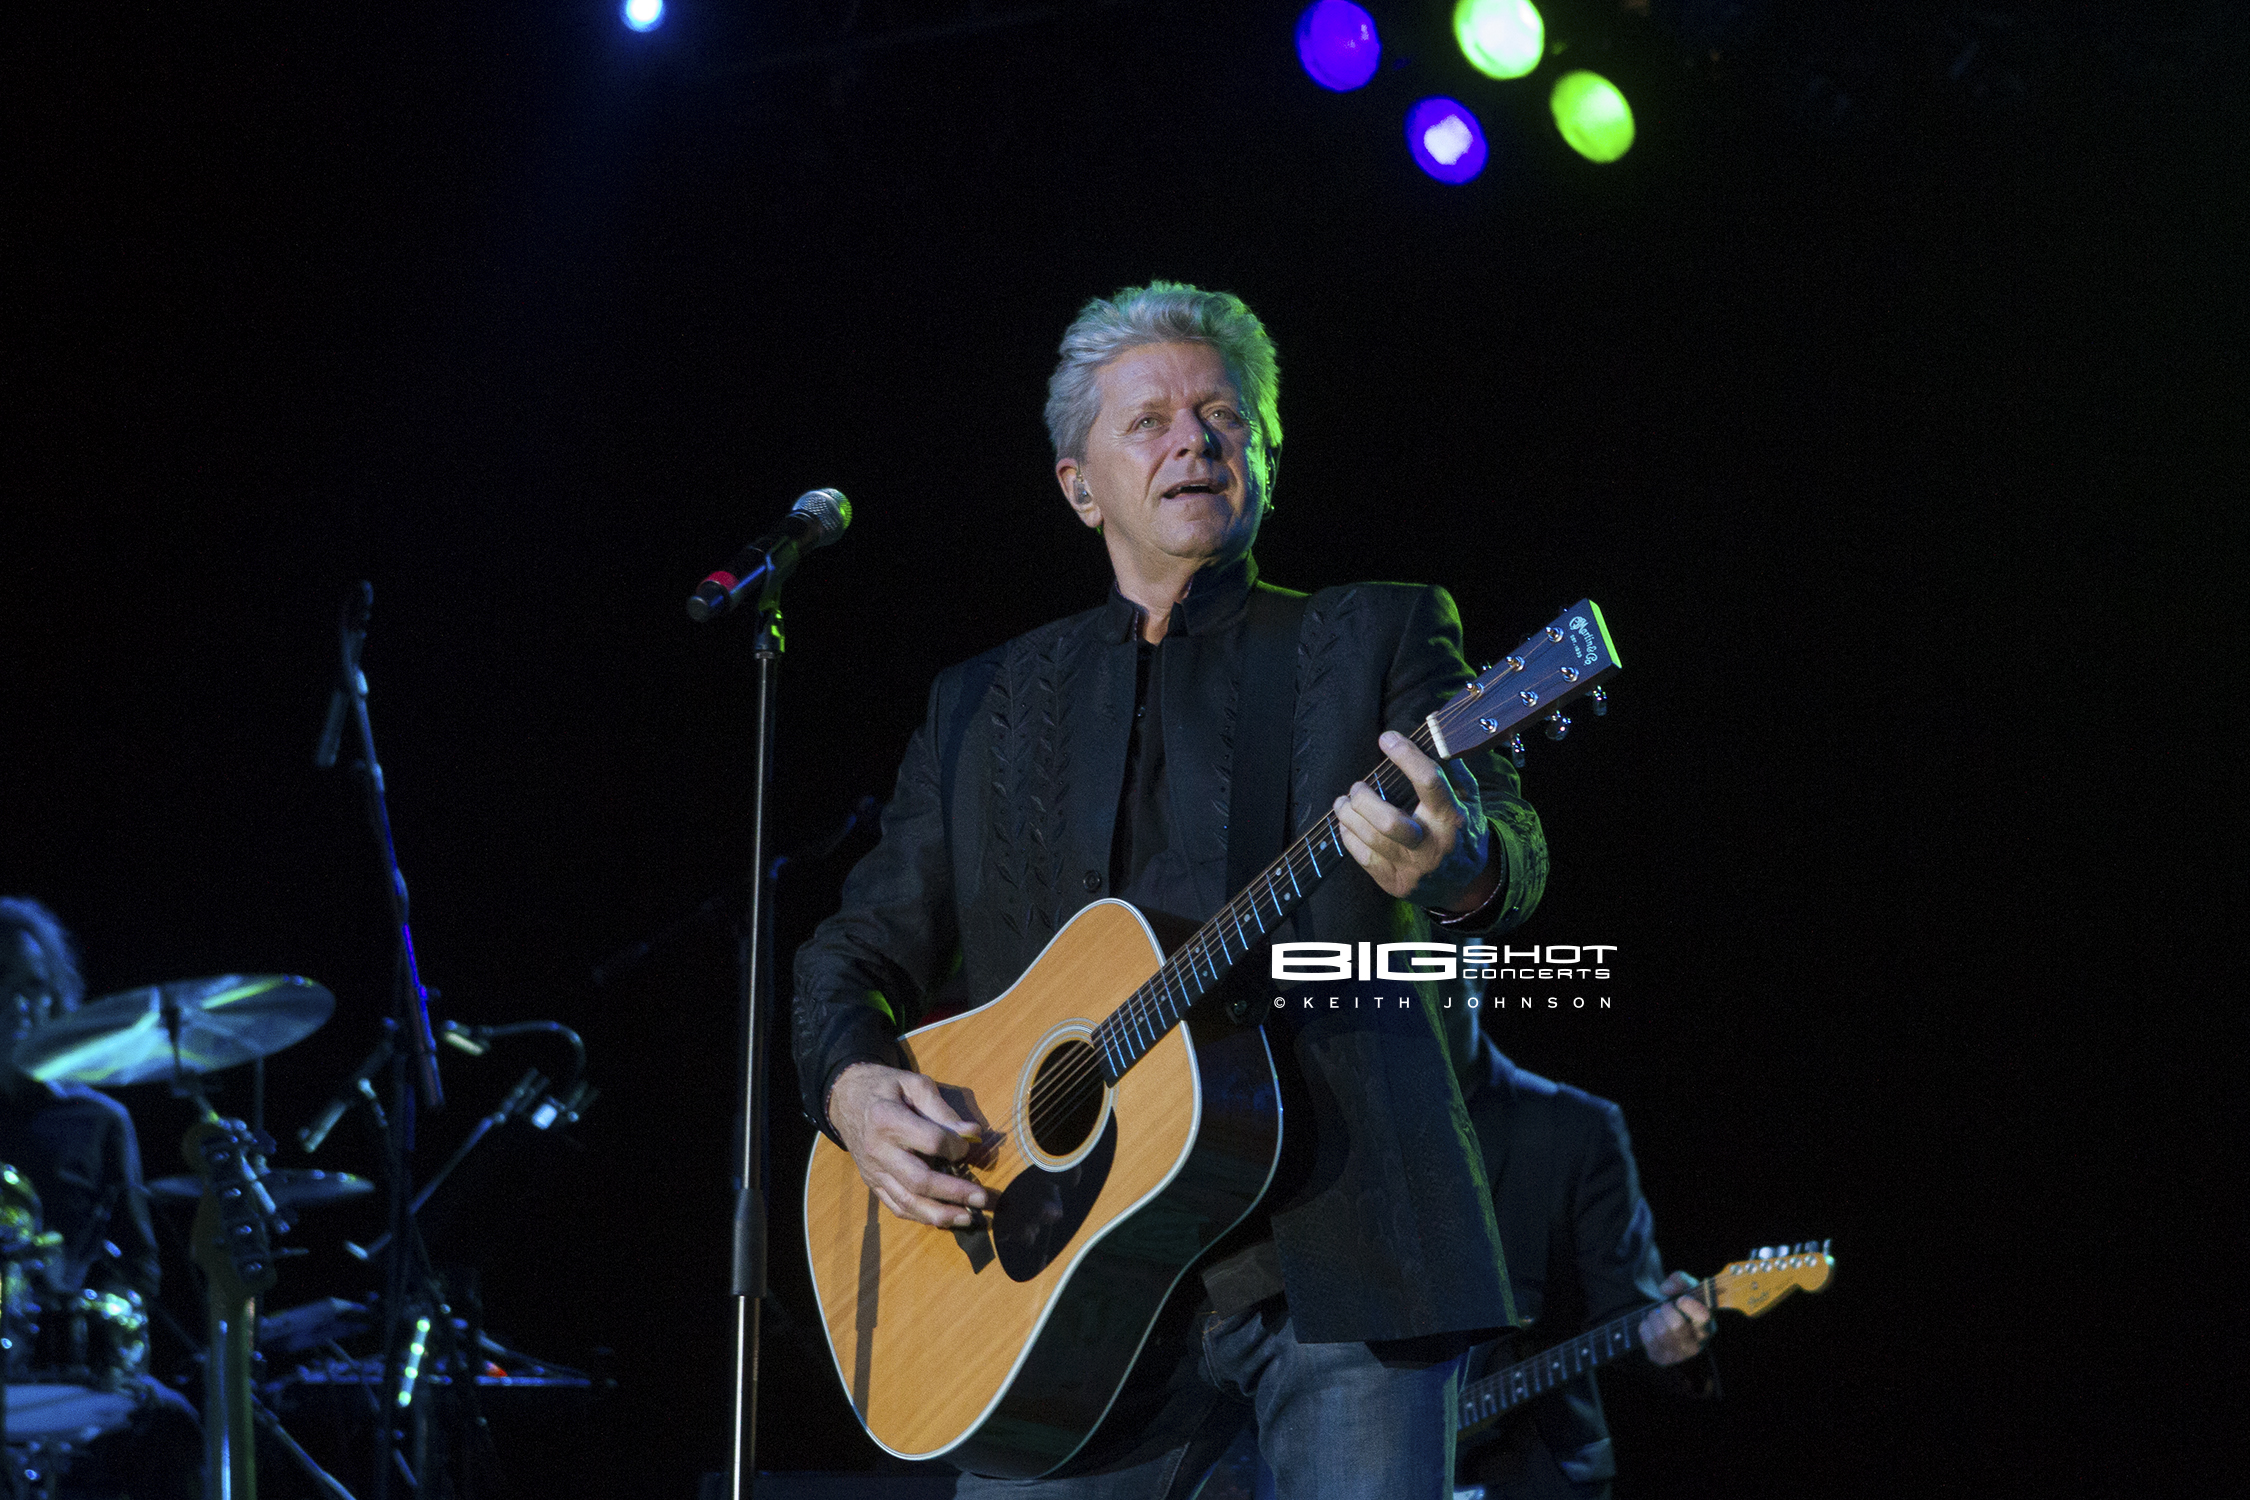 Peter Cetera concert - The Amp